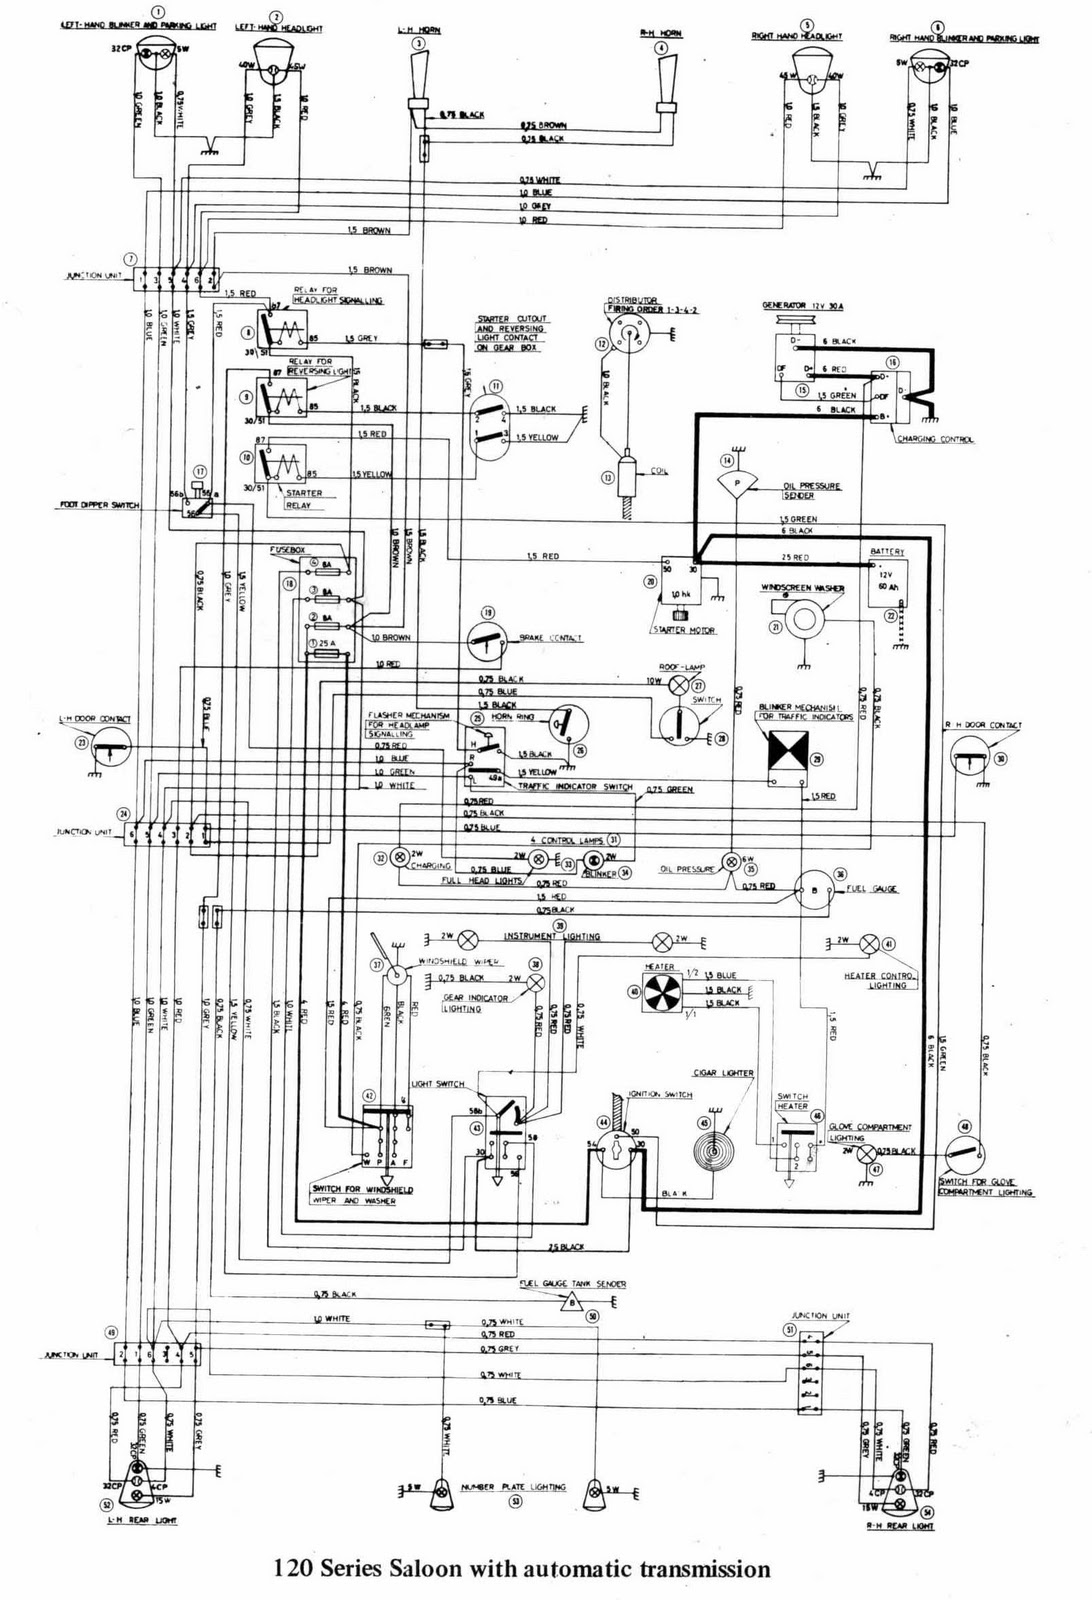 Complete    Wiring       Diagrams    Of    Volvo    122S   All about    Wiring